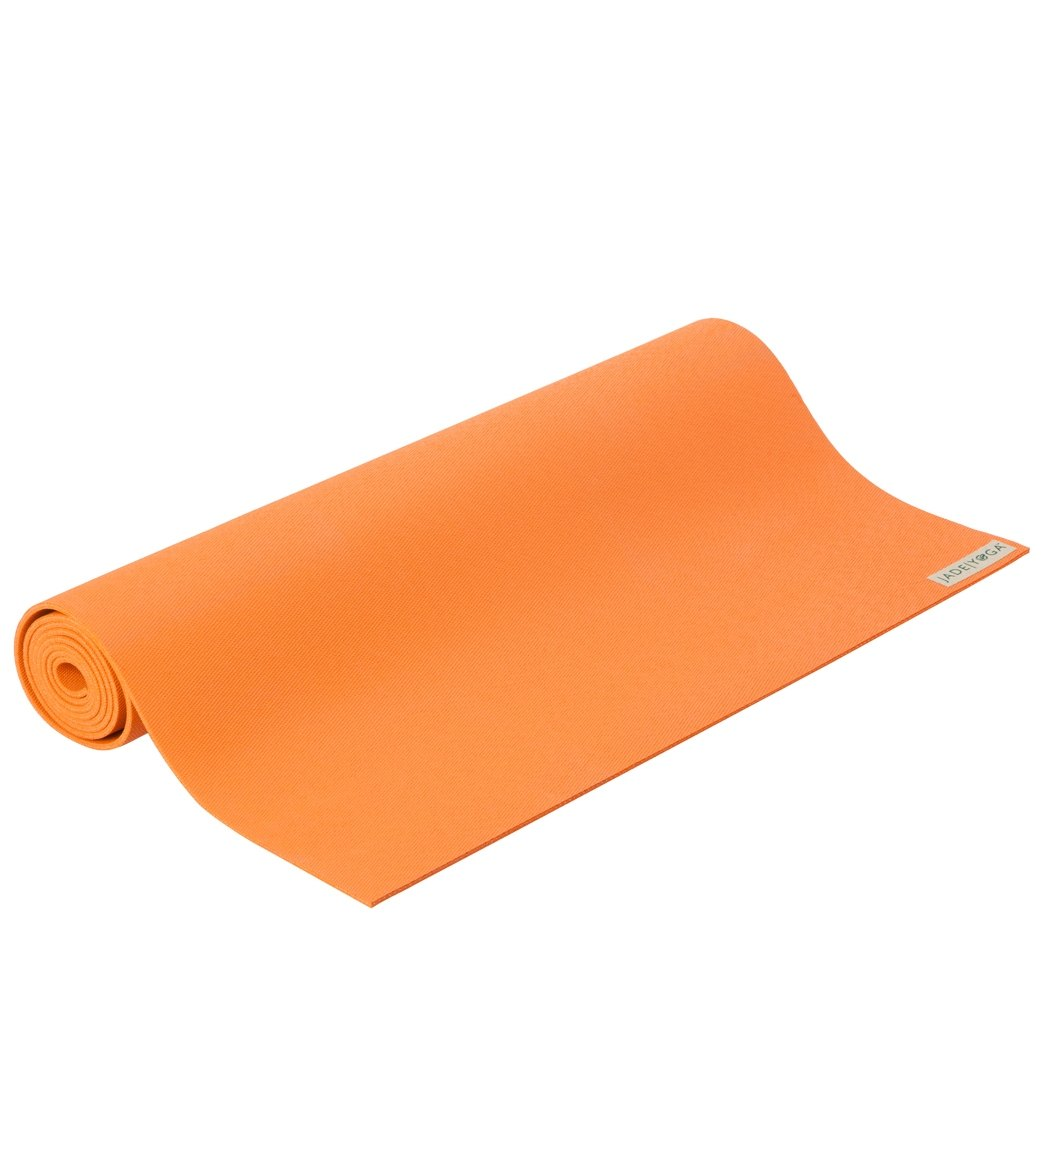 Jade Yoga Harmony Natural Rubber Yoga Mat 68 5mm Mats Blocks Gear At Yogaoutlet Com